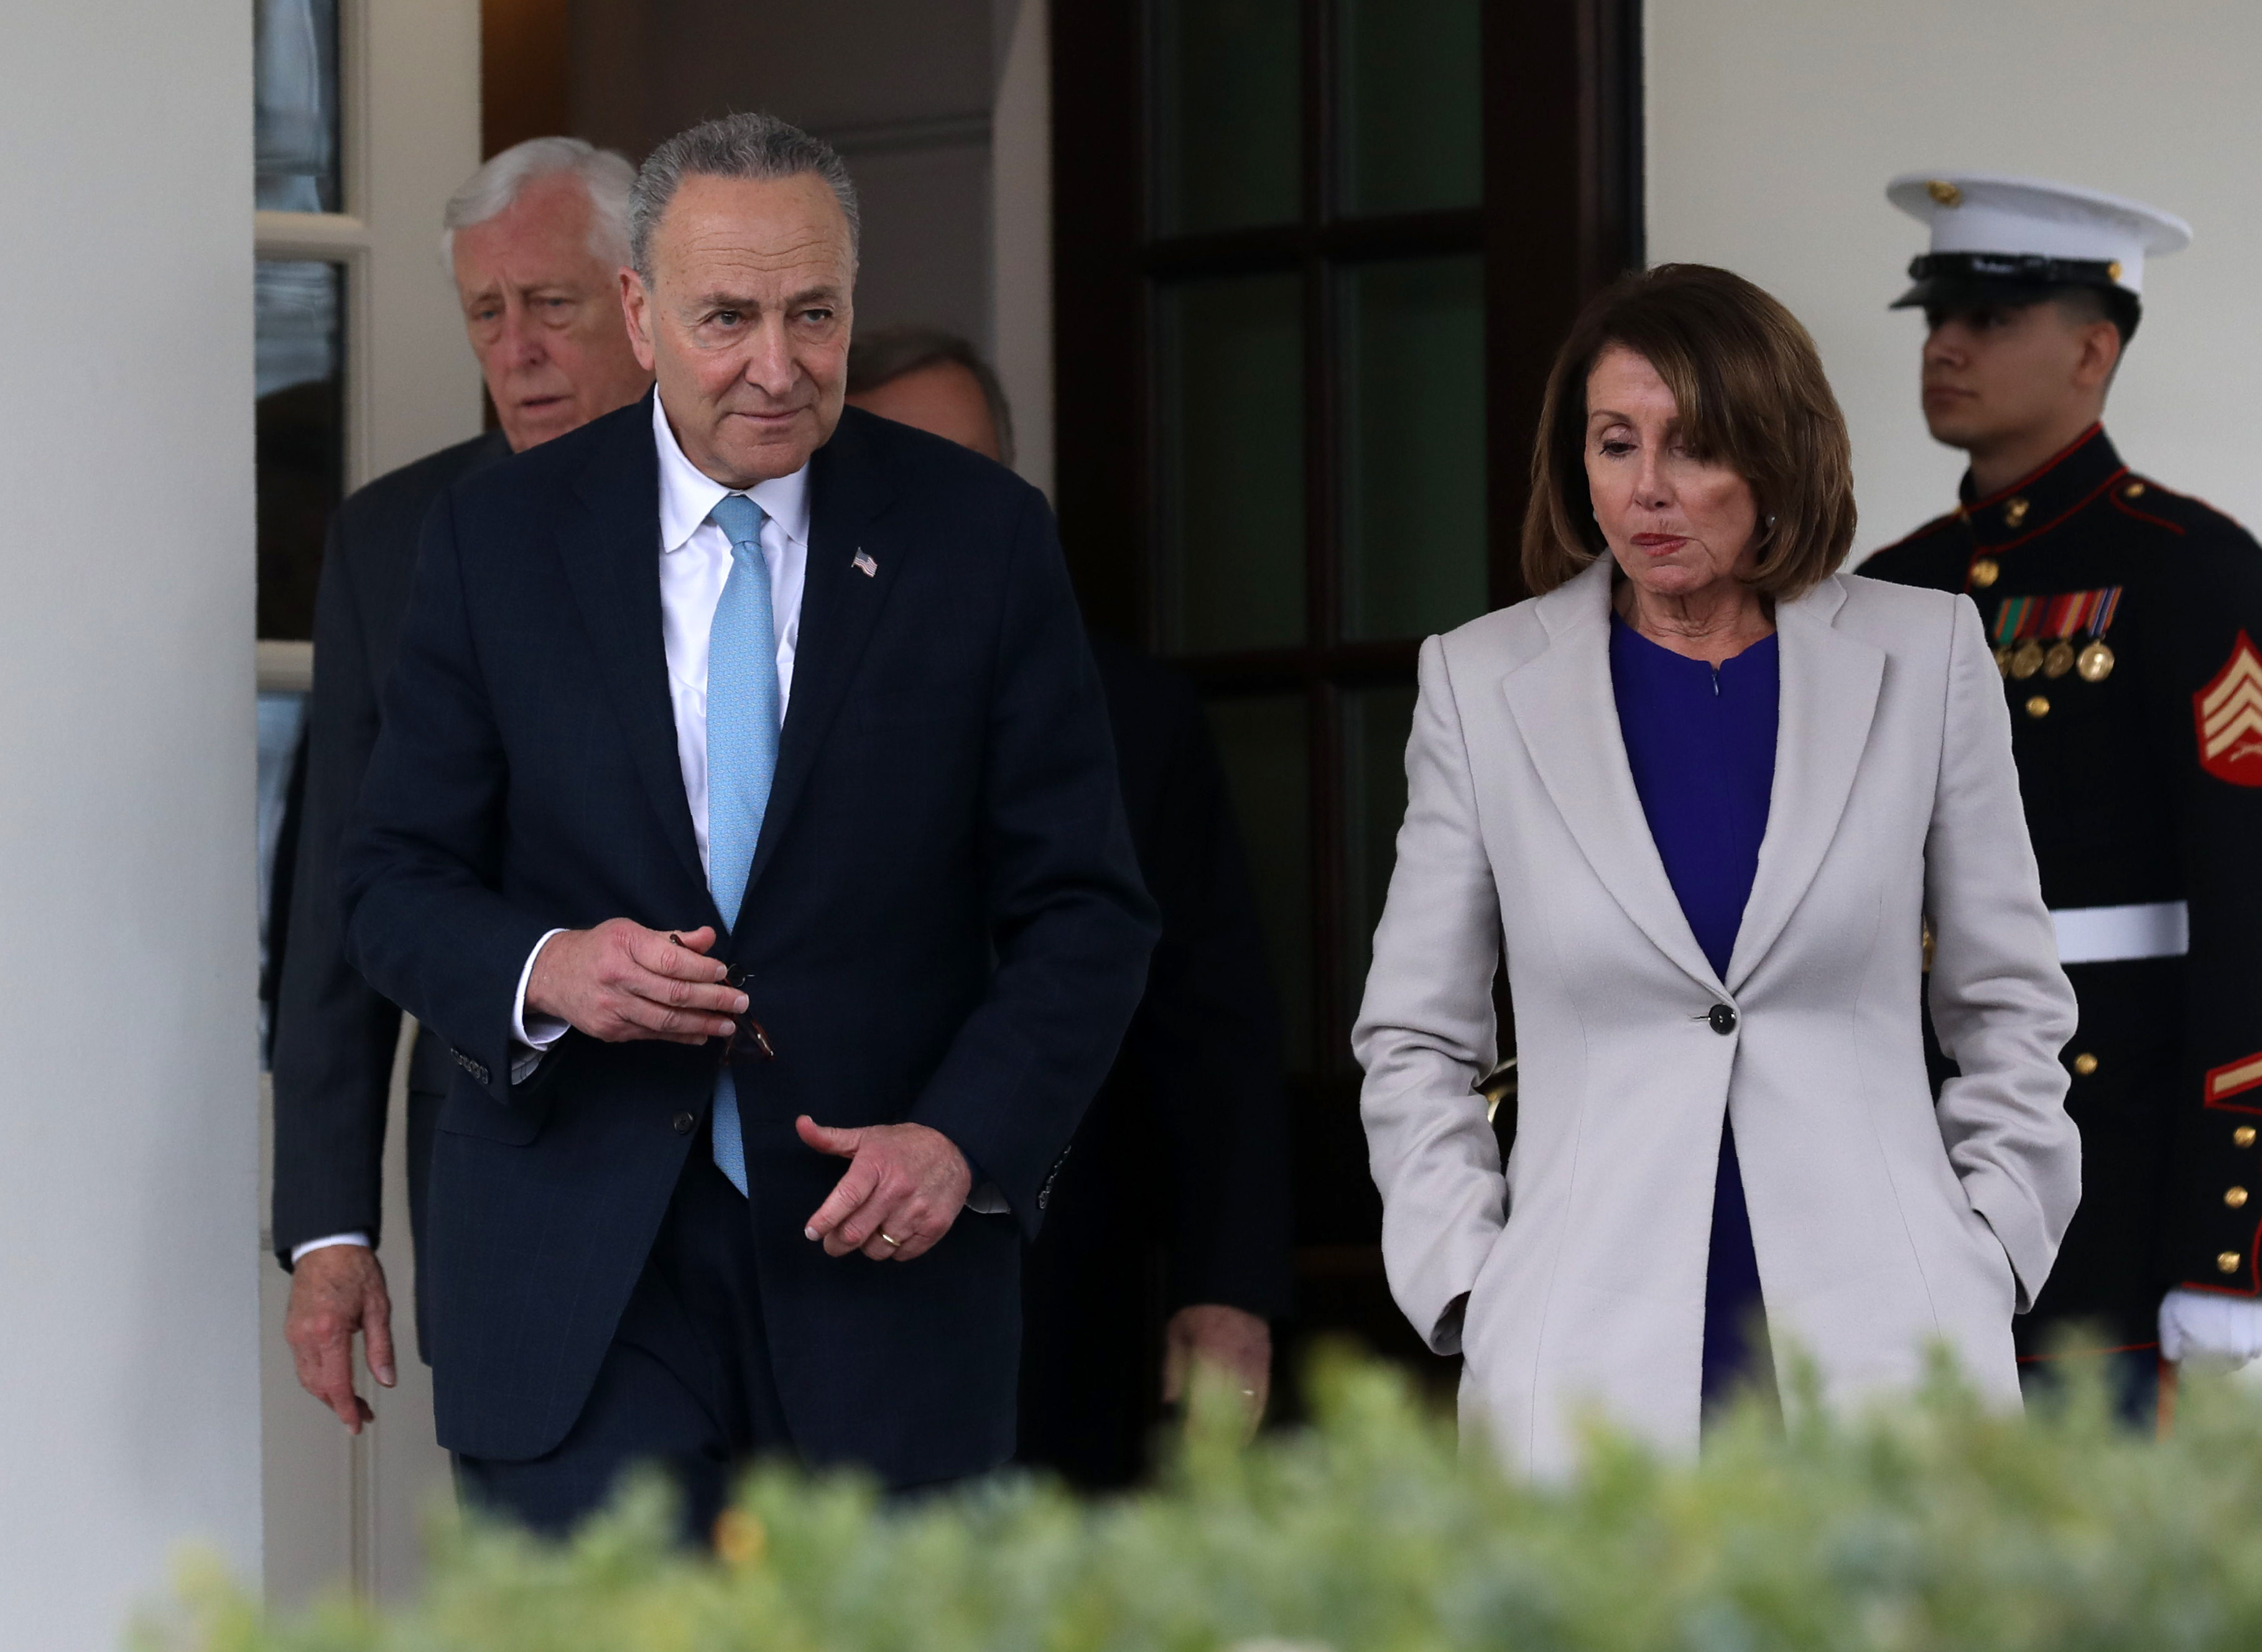 House Speaker Nancy Pelosi, Senate Minority Leader Chuck Schumer and Rep. Steny Hoyer exit the White House after meeting with US President Donald Trump (Alex Edelman/AFP/Getty Images)